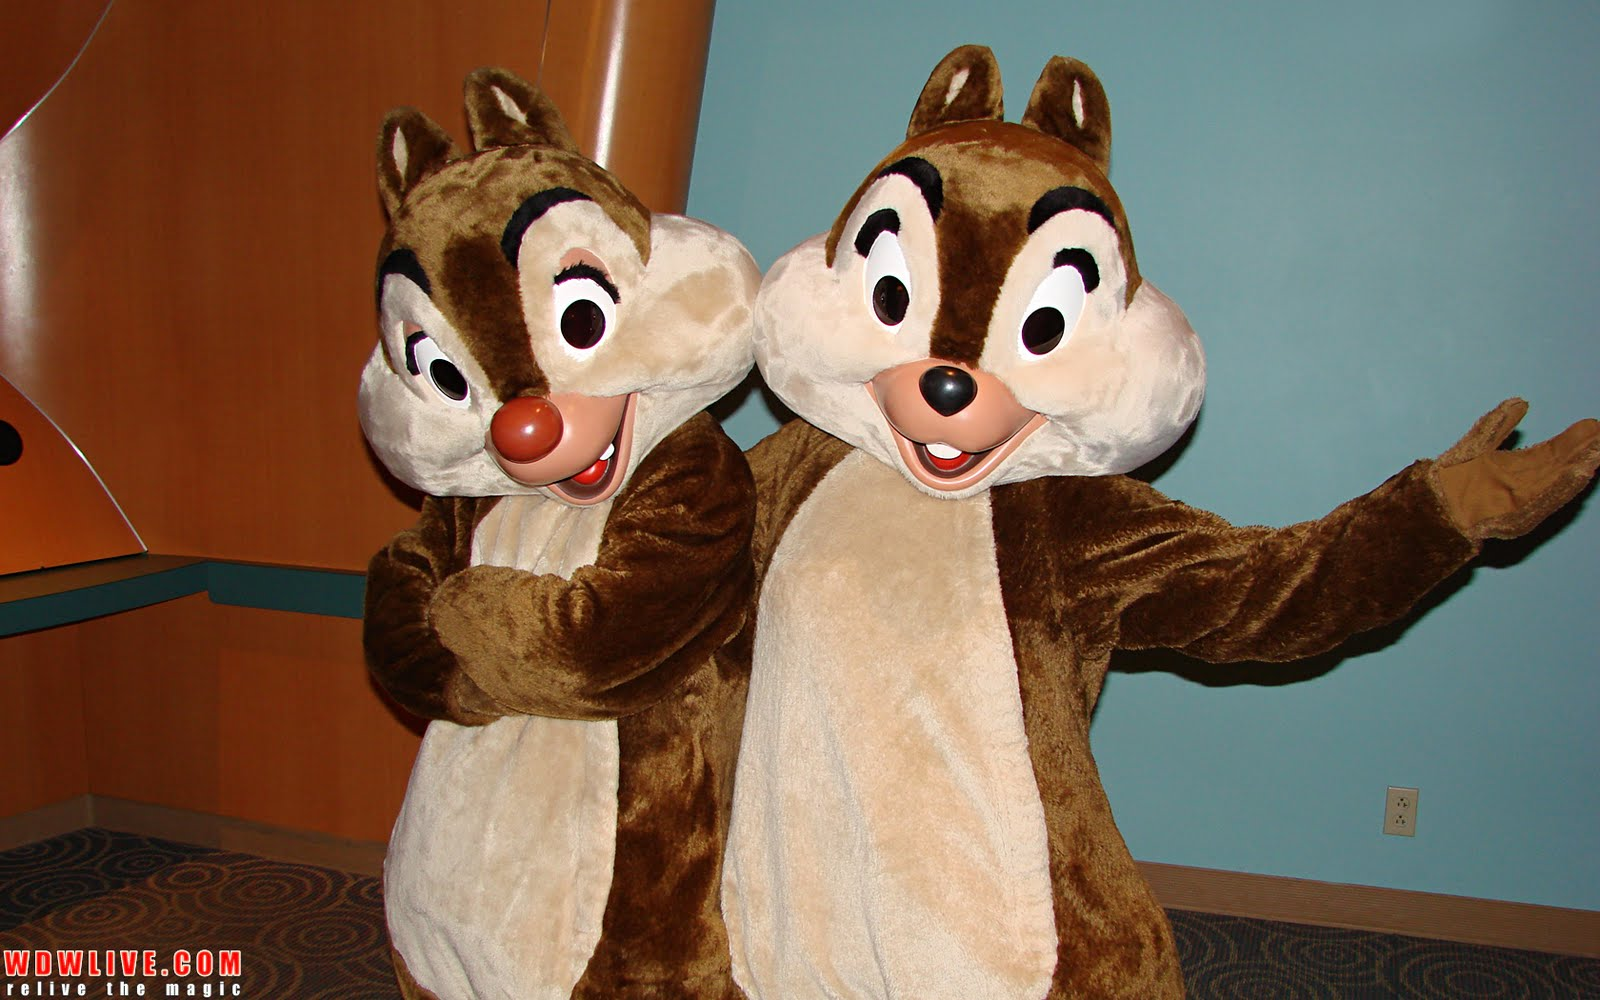 Chip And Dale Wallpaper Hd Desiree Huffman Chip And Dale Wallpaper